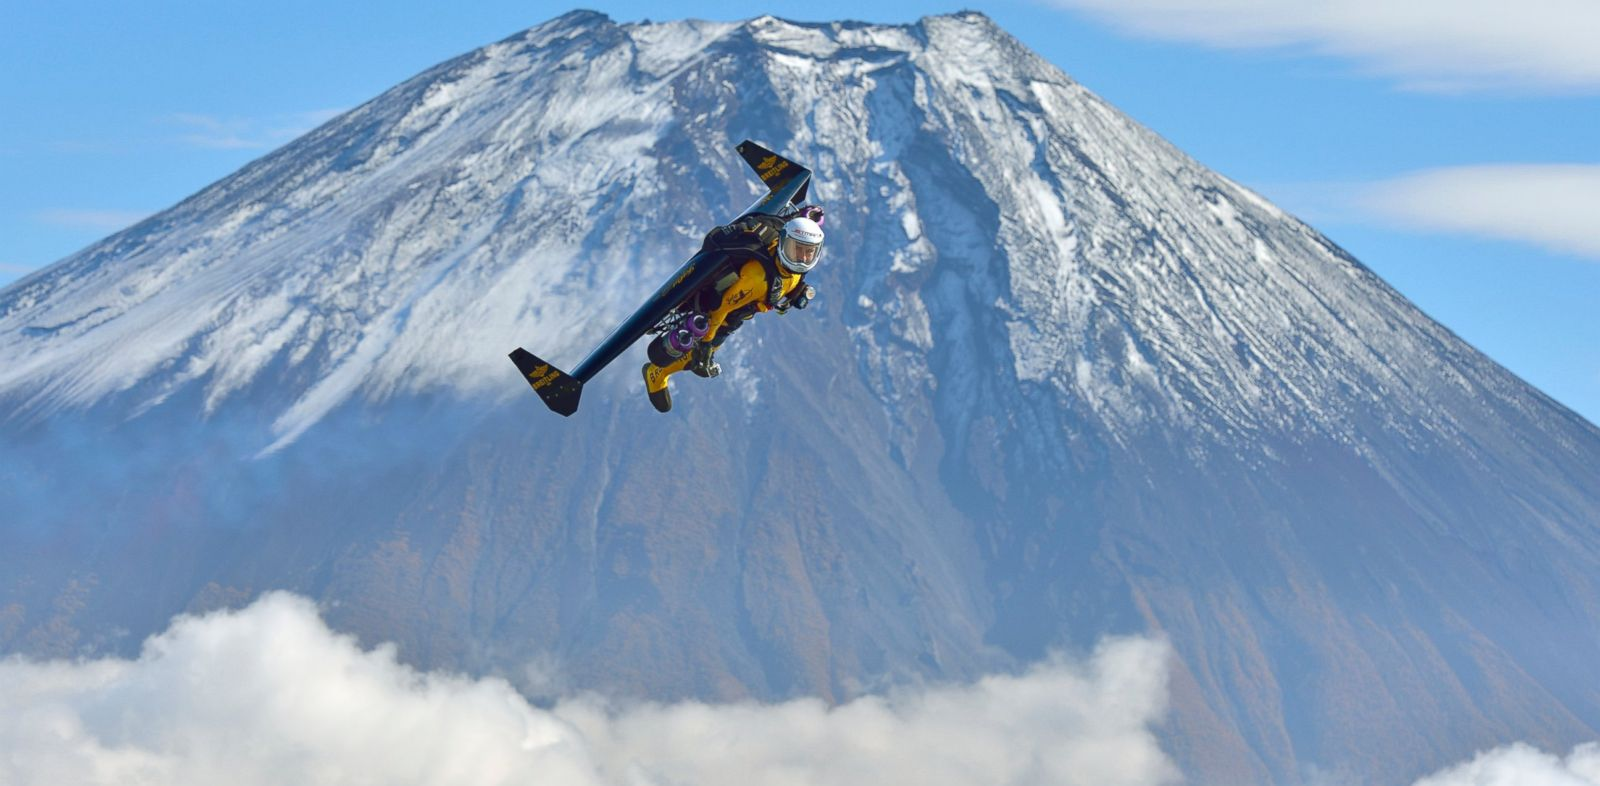 PHOTO: Yves Rossy, known as the Jetman, flies by Mount Fuji in Japan, Nov. 1, 2013.